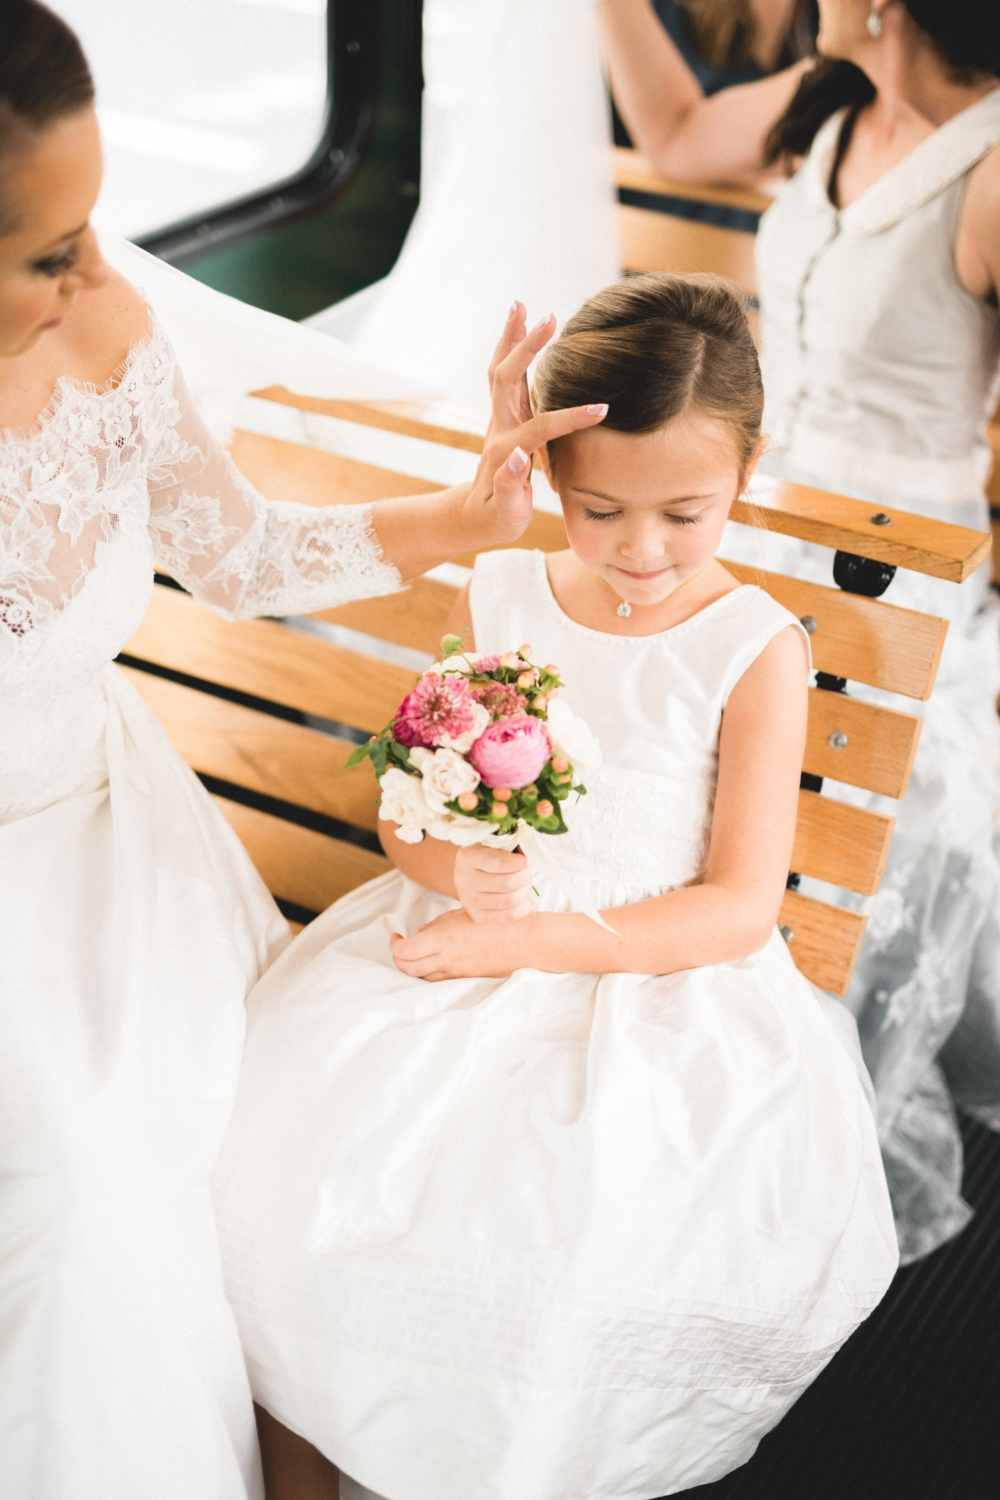 Brielle always knew Abbey would be her flower girl, since the day she was born. It was so important to Brielle that Abbey was near. Abbey's part in this day was important to her heart.